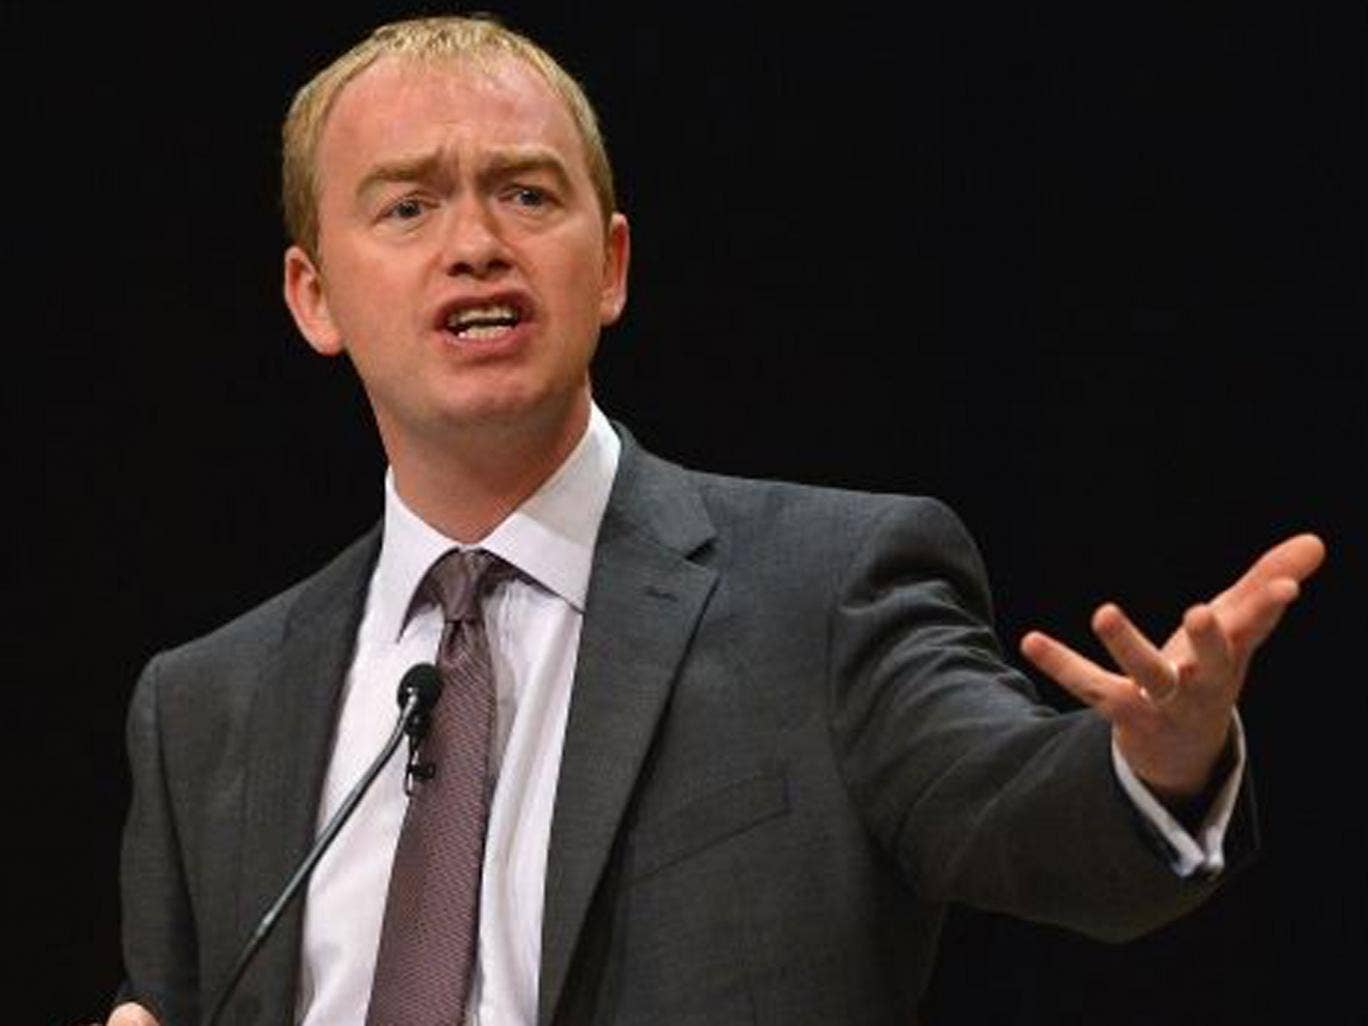 Tim Farron, Lib Dem MP for Westmorland and Lonsdale